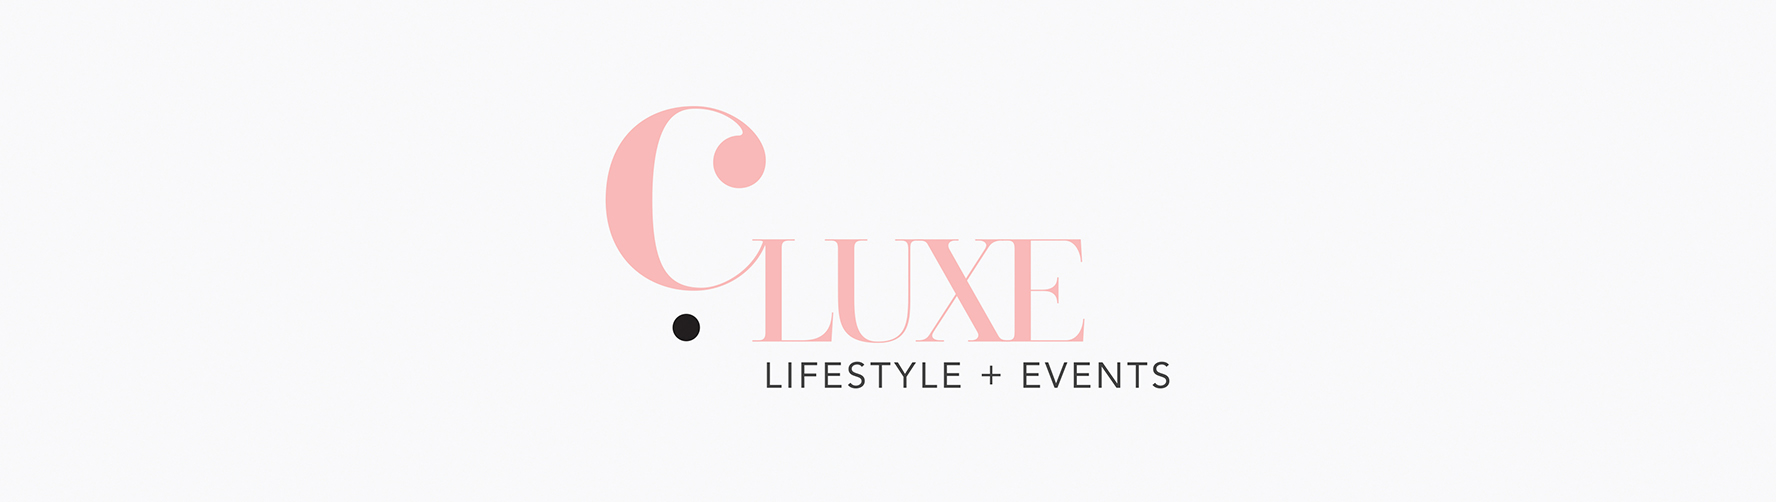 C Luxe Lifestyle and Events